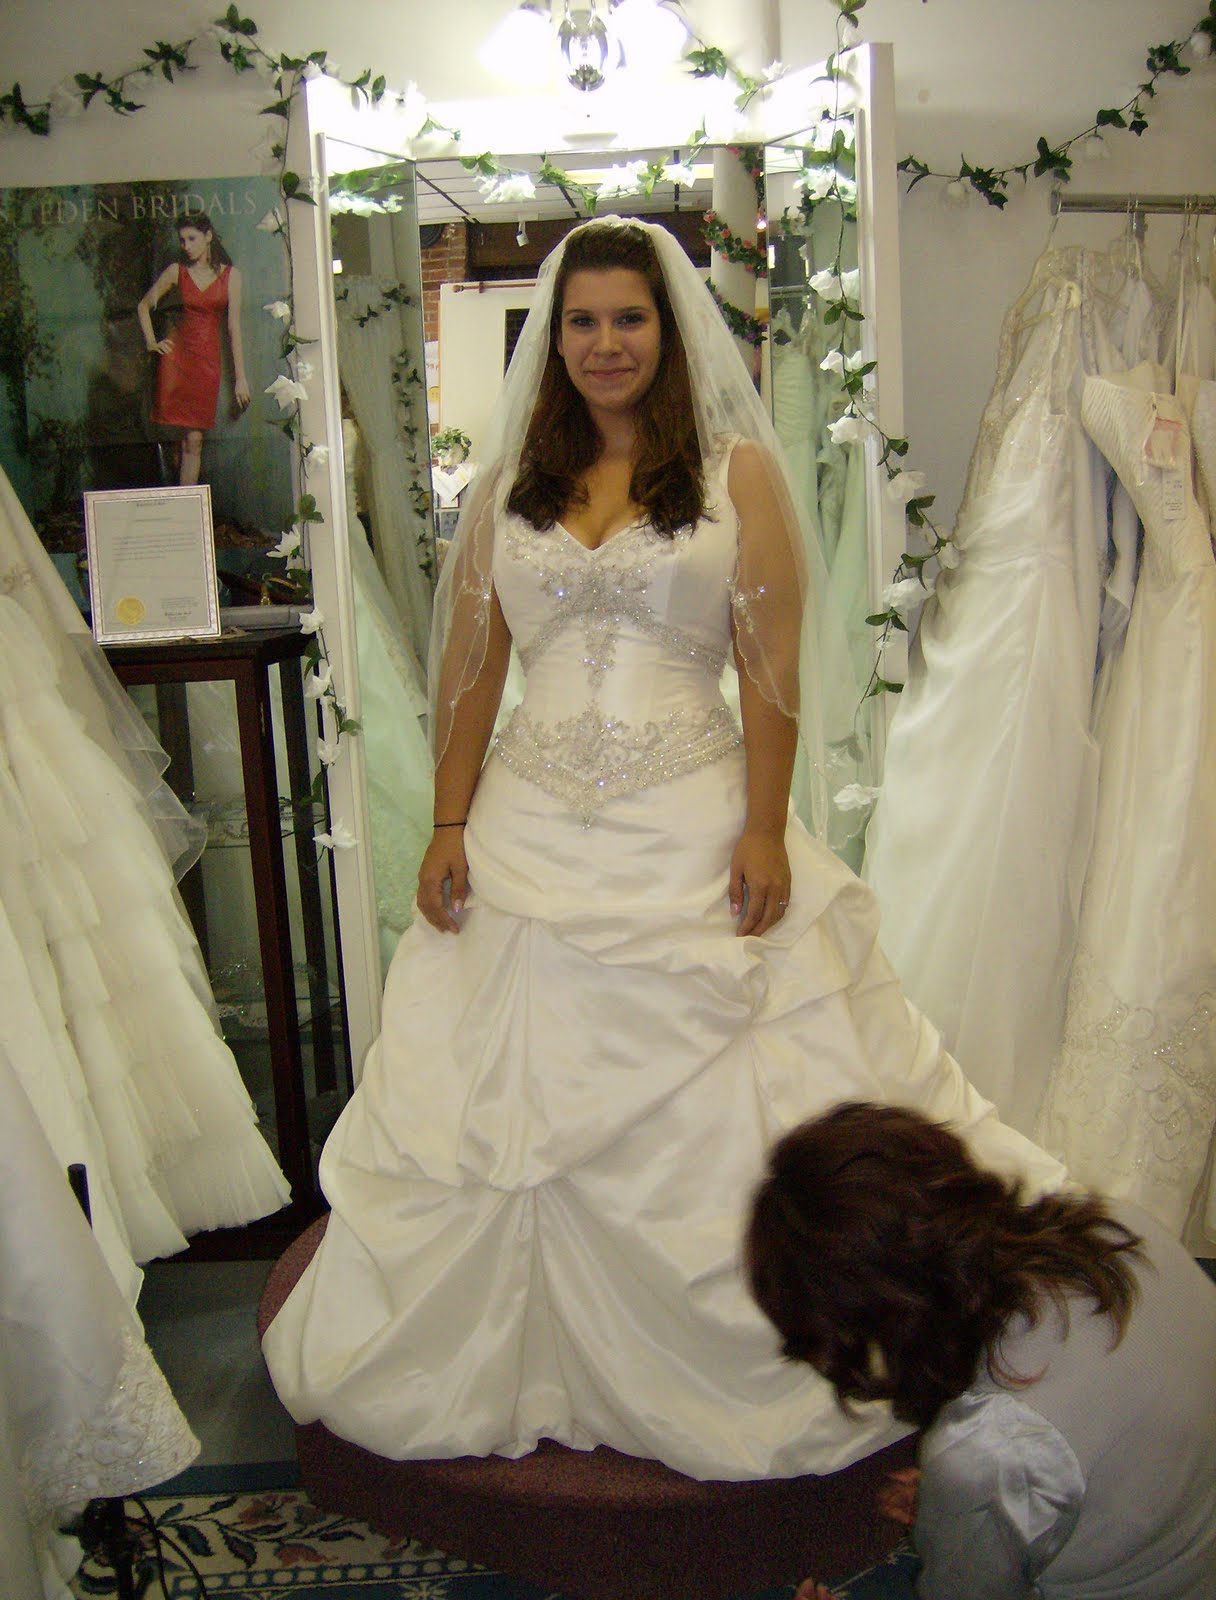 Does Anyone Know Of A Consignment Shop That Buys Wedding Dresses I Really Want This Thing Out My Closet And It Would Be Great To Make Few Dollars On